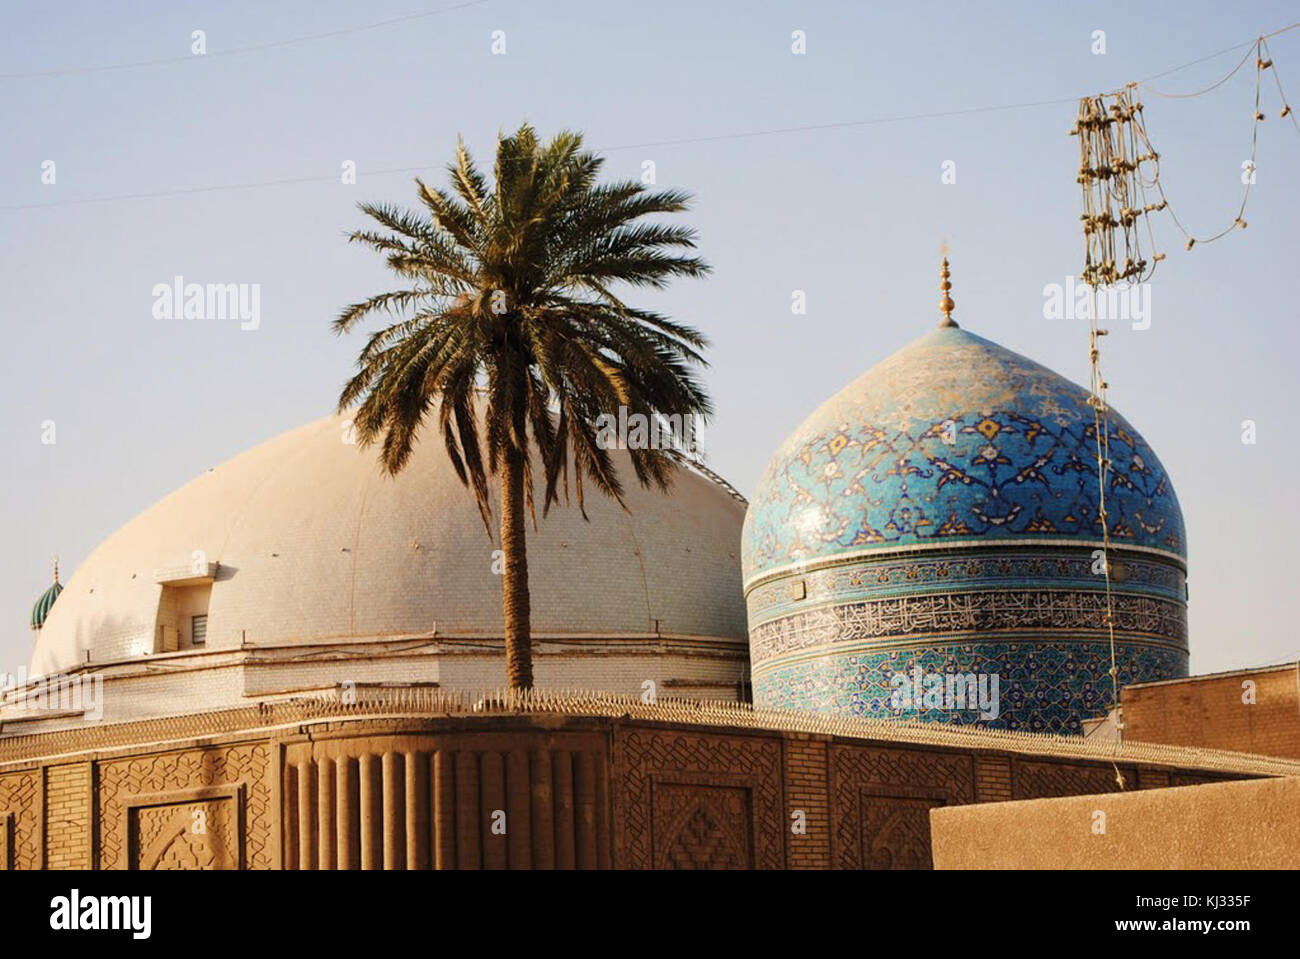 Shrine Of Abdul Qadir Jilani 2 Baghdad Iraq